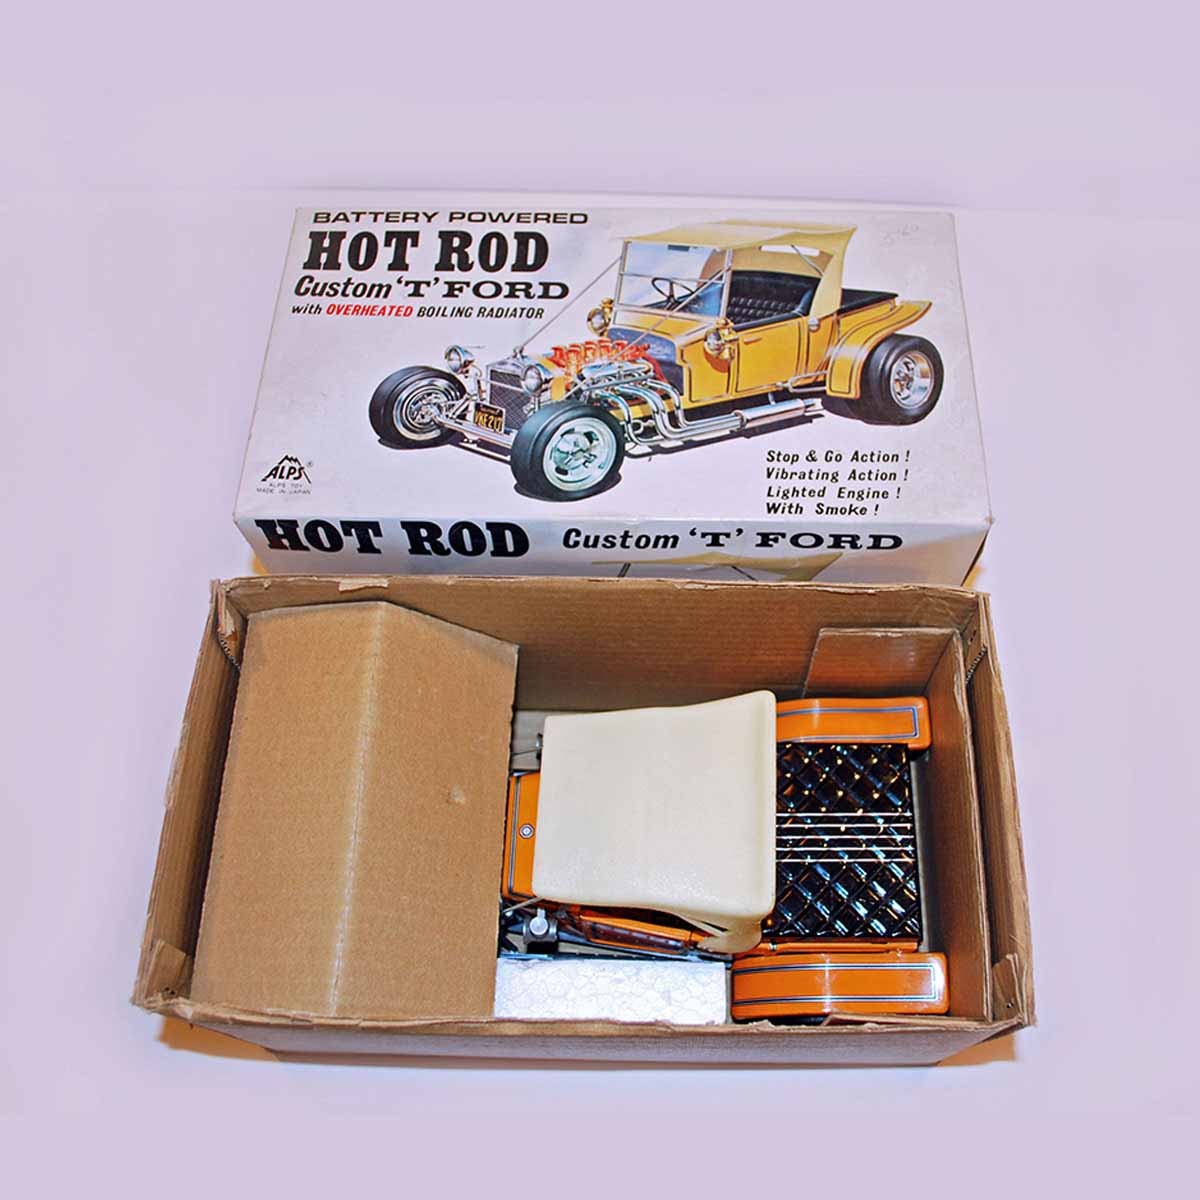 Alps Battery Powered HOT ROD Custom 'T' Ford In Box